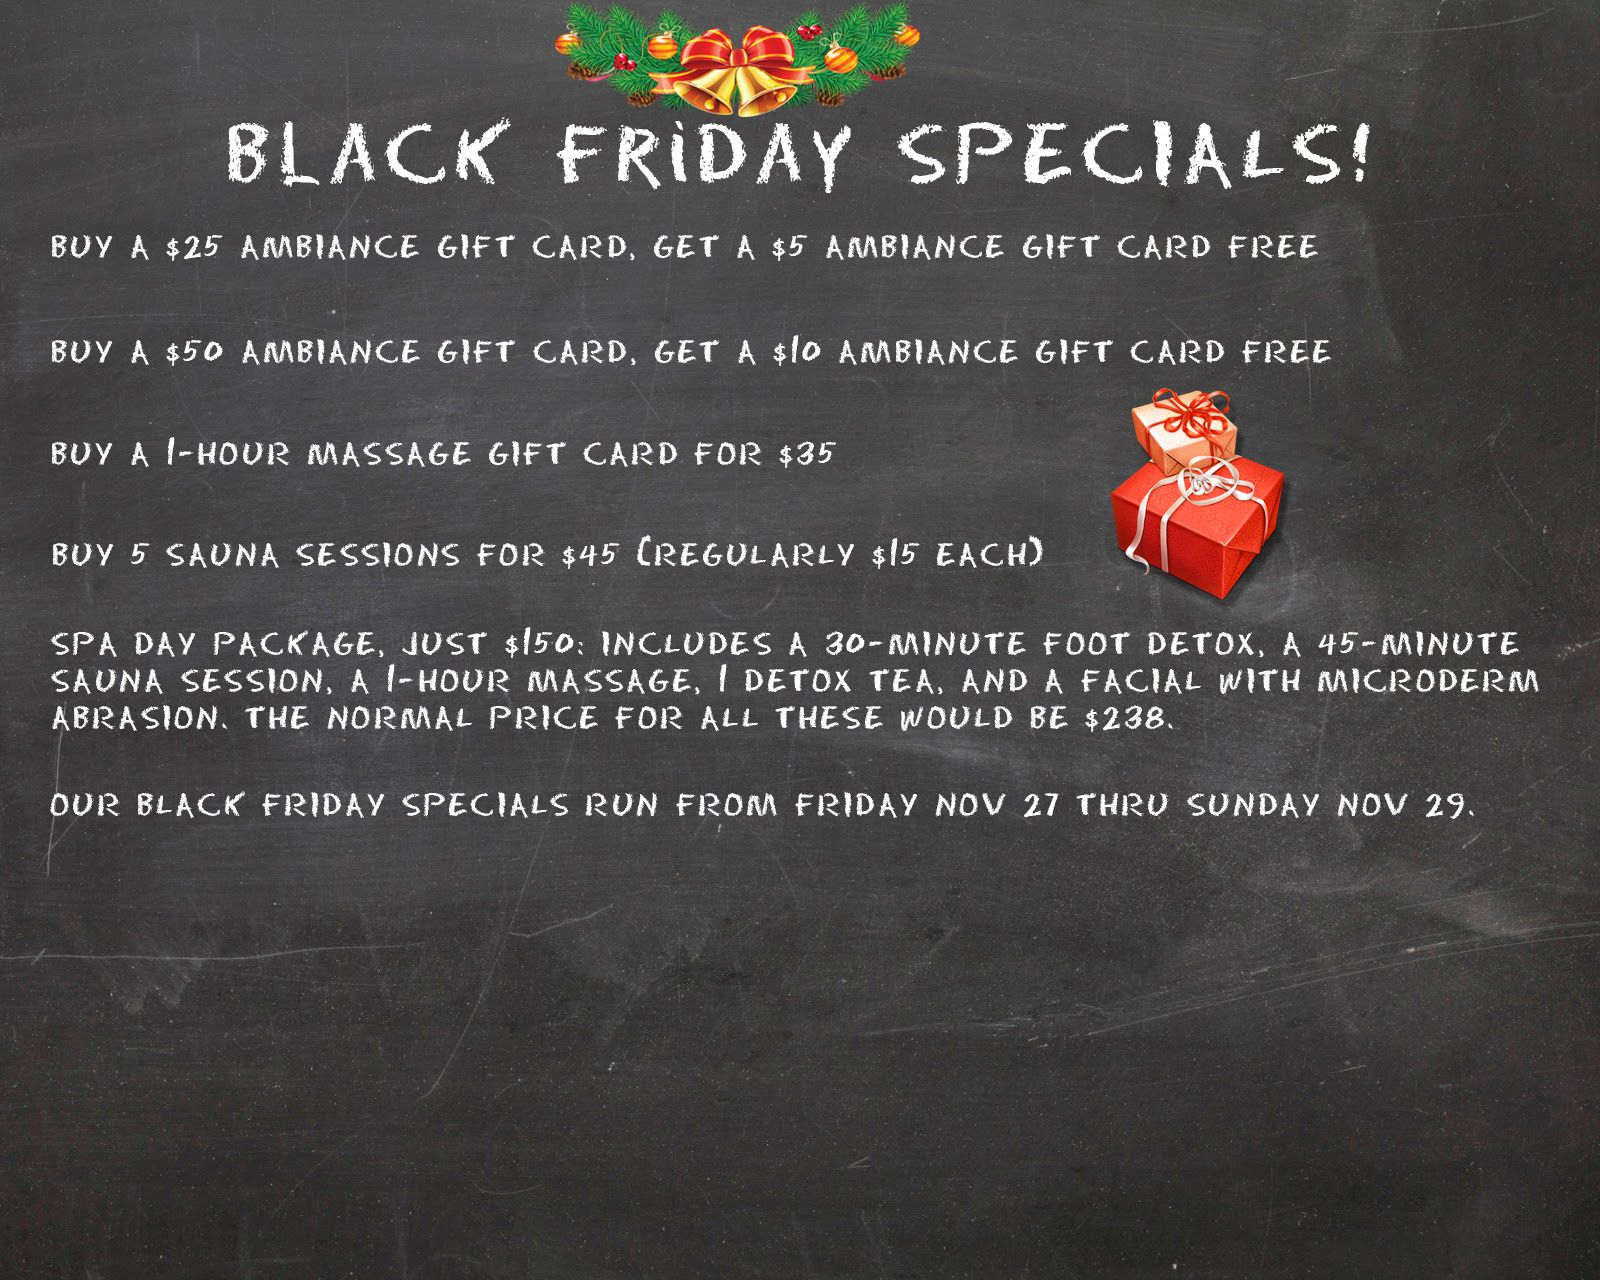 We have Black Friday Specials just for you! Be sure to stop by and take advantage of our great deals this Friday thru Sunday....not to mention for a well-deserved break from the holiday madness. http://ambiancetanespresso.com/BlackFriday.html